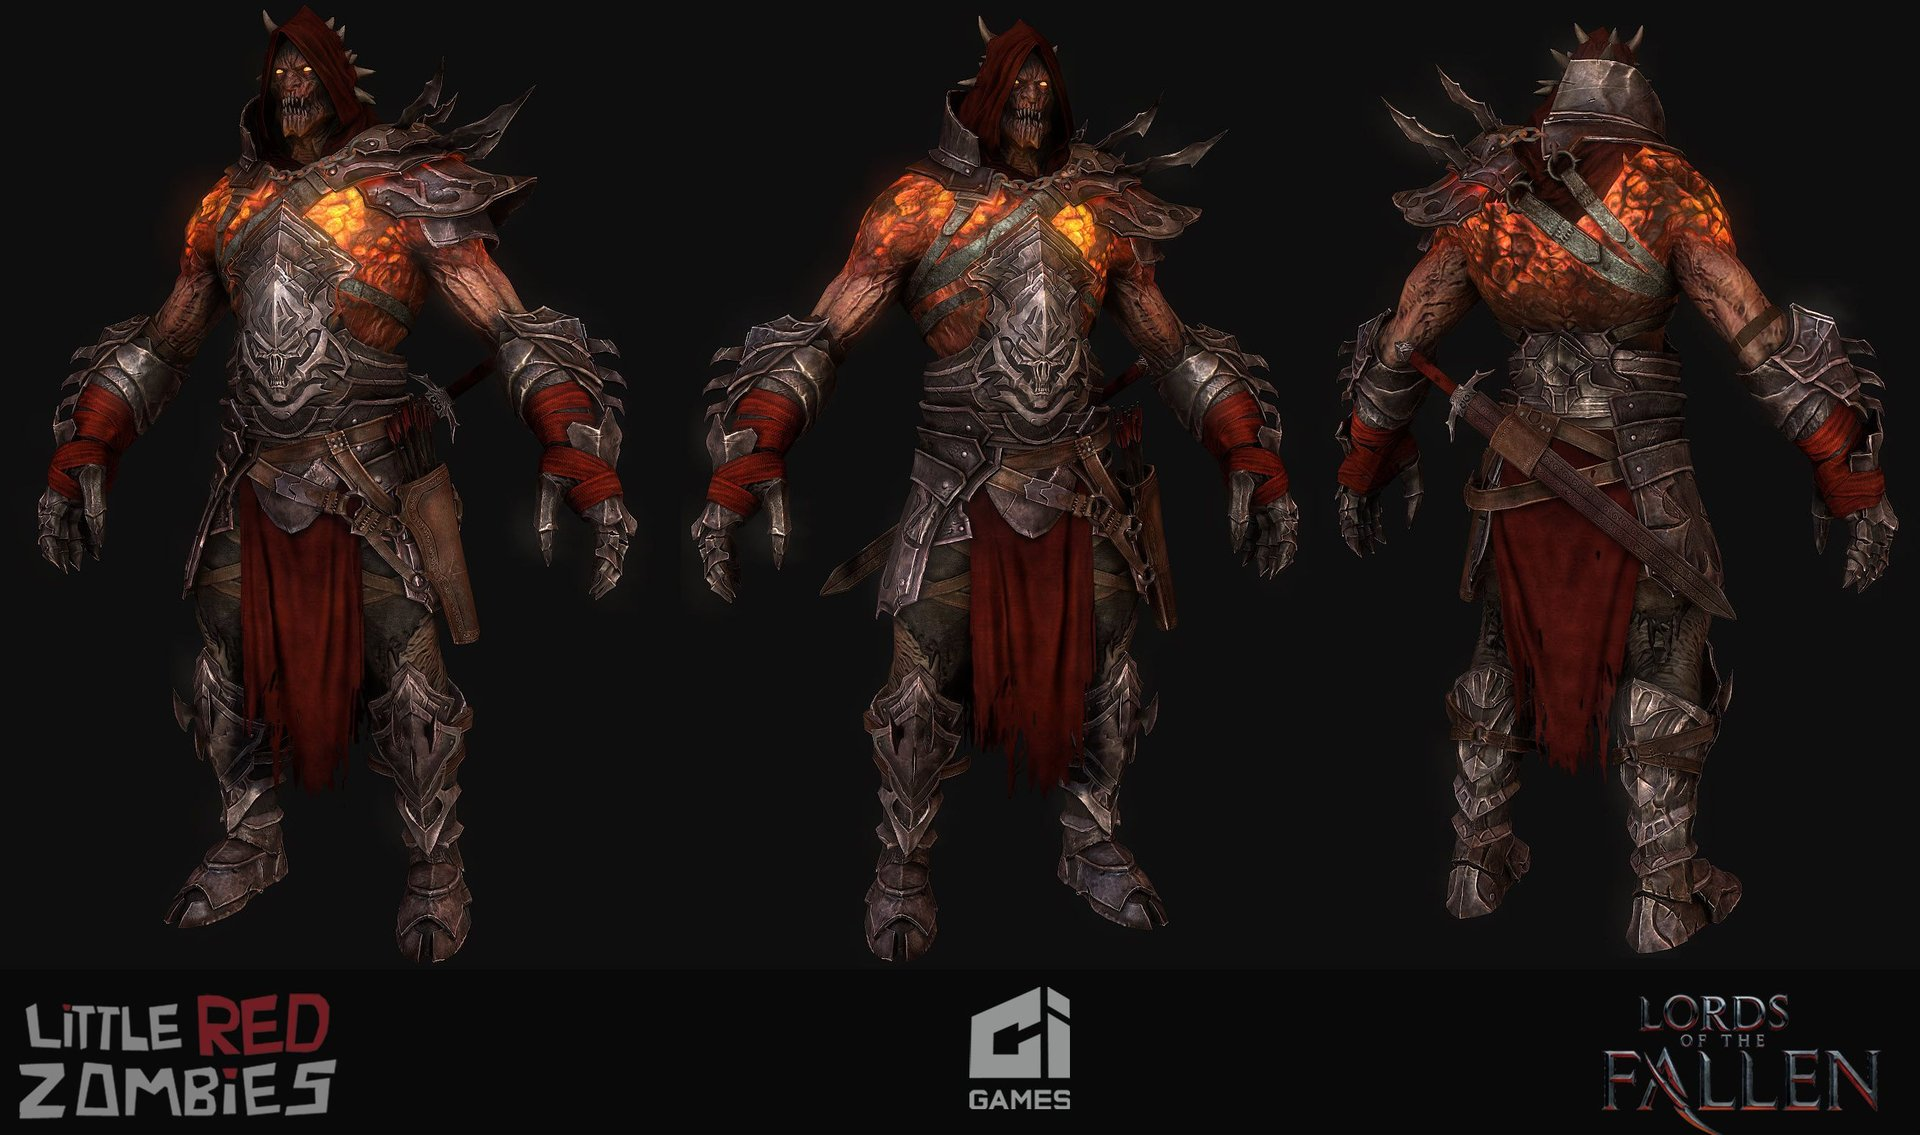 Rhogar(Responsible for Highpoly and Texturing)